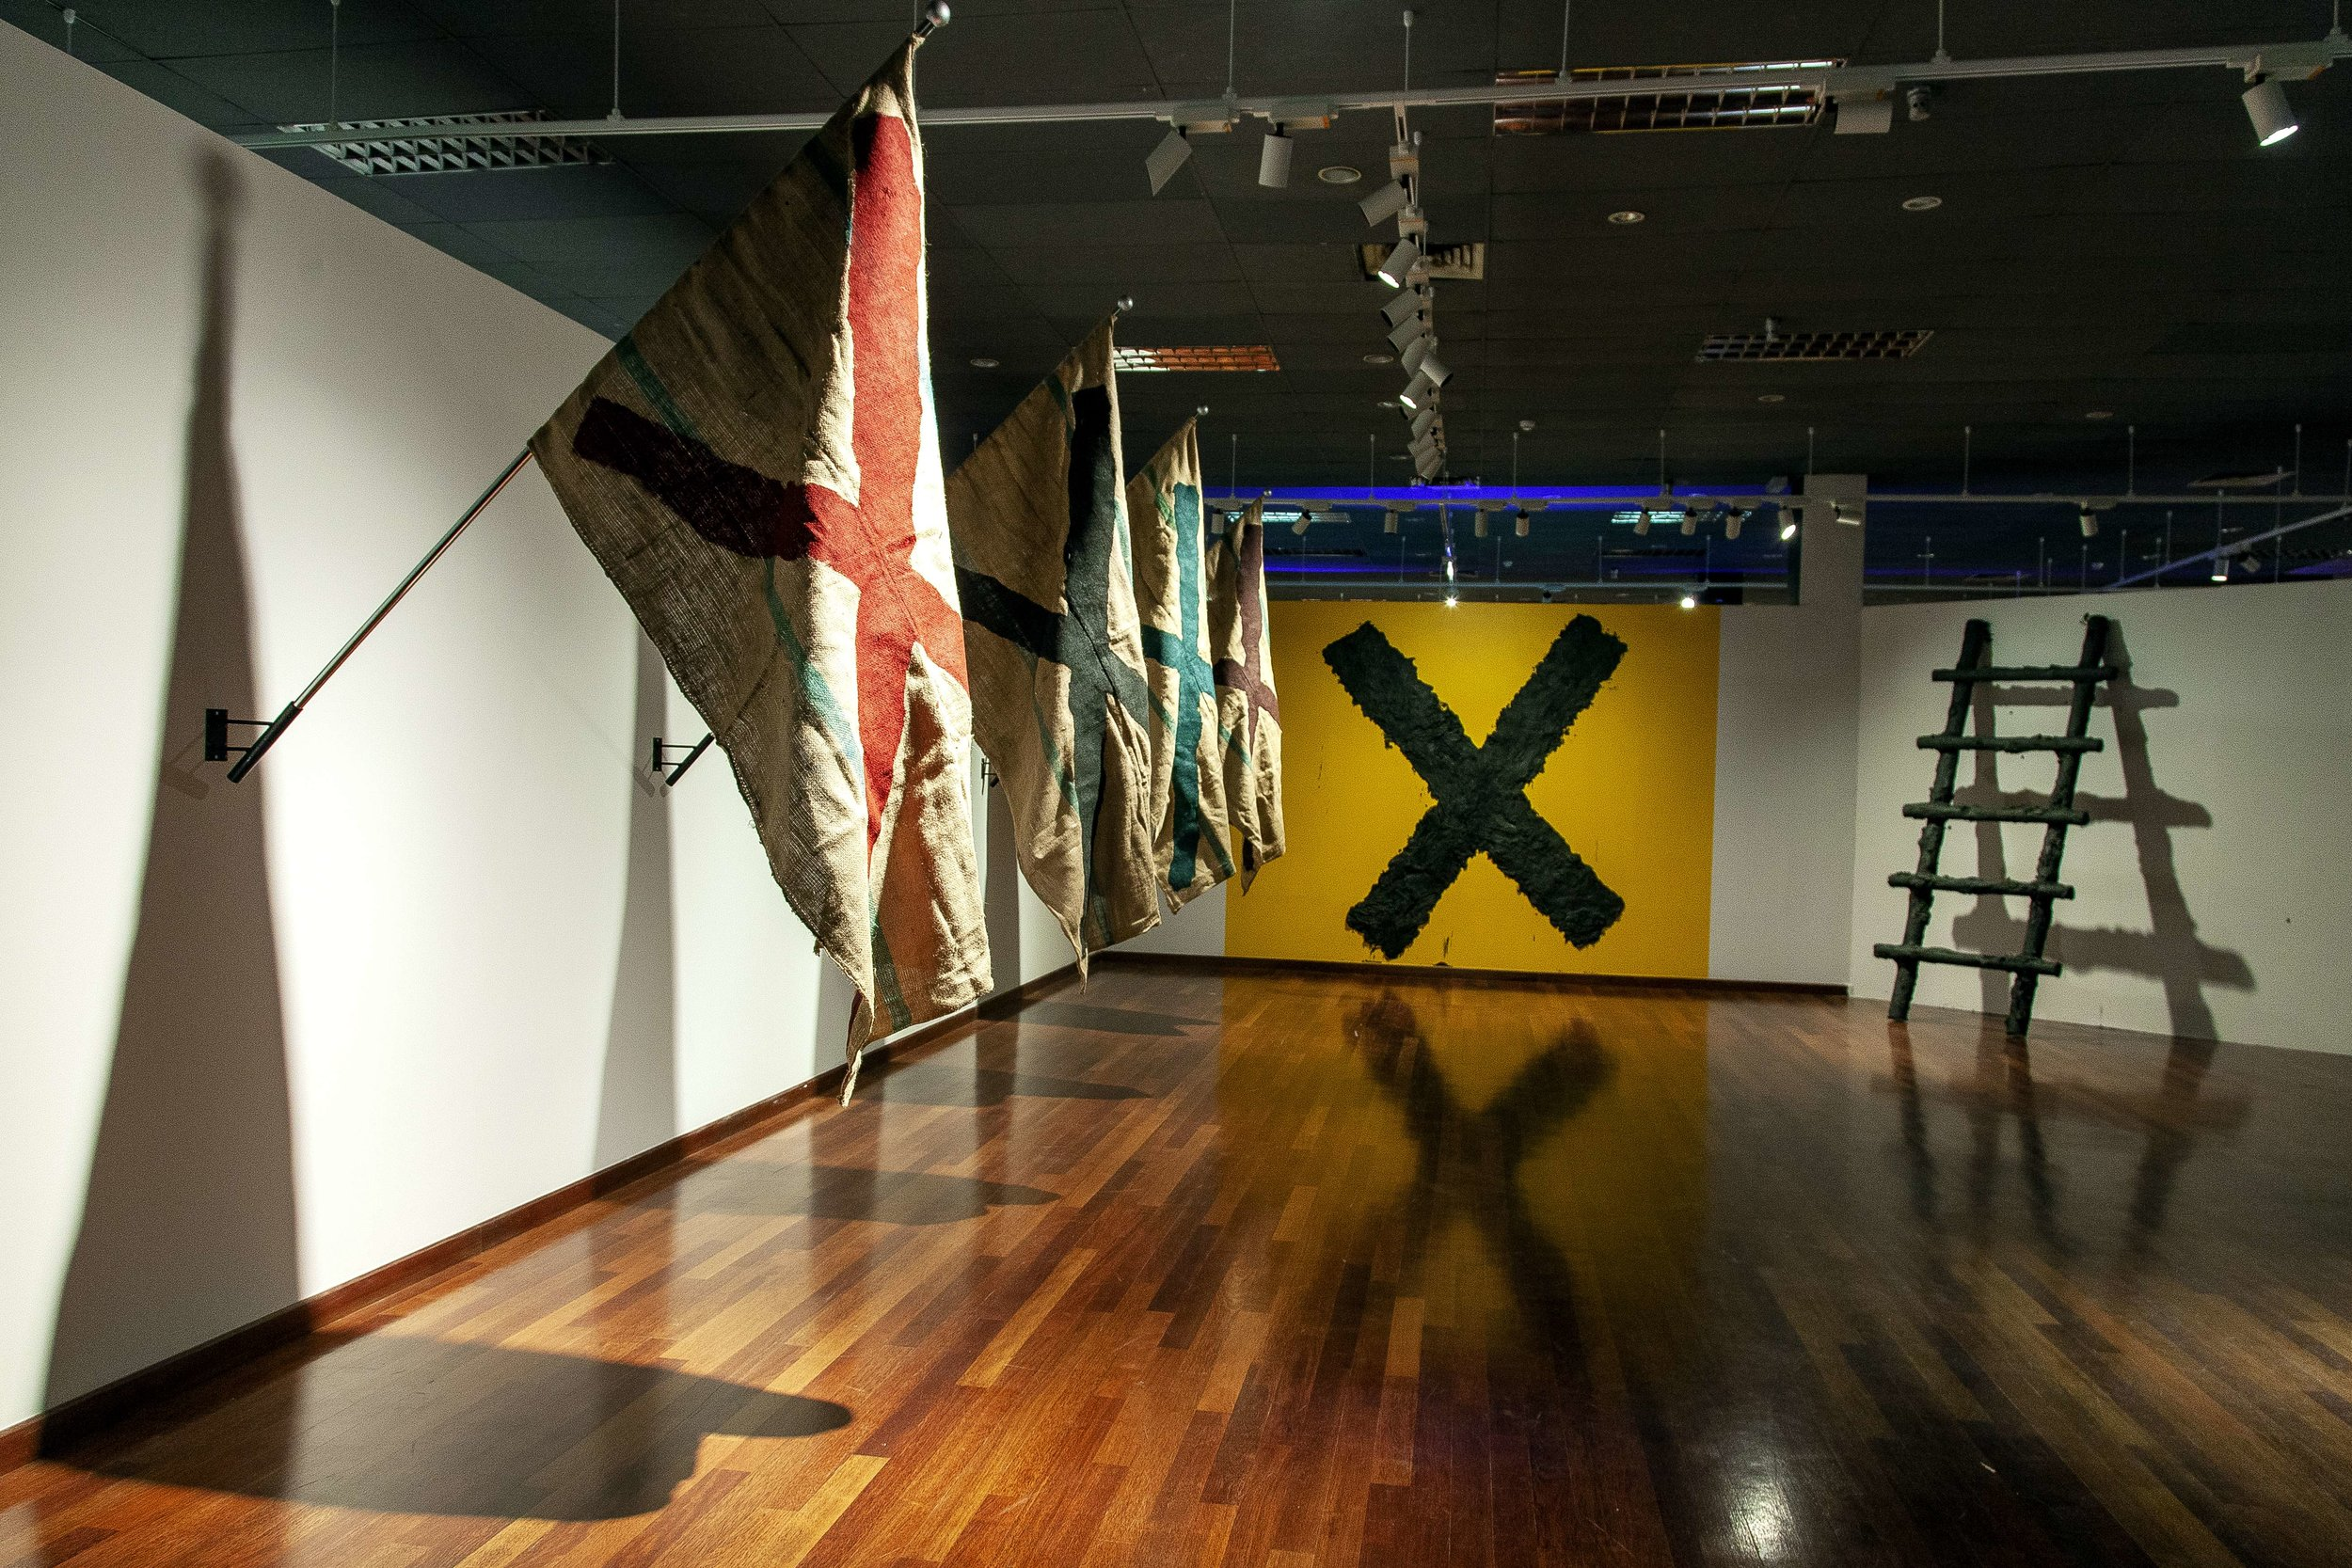 Samsudin Wahab, 'Rambu-Rambu Memori', 2019, installation, ladder, paddy sack jute, mud from a mangrove forest, soil and others, dimensions variable. Image courtesy of National Art Gallery Malaysia.